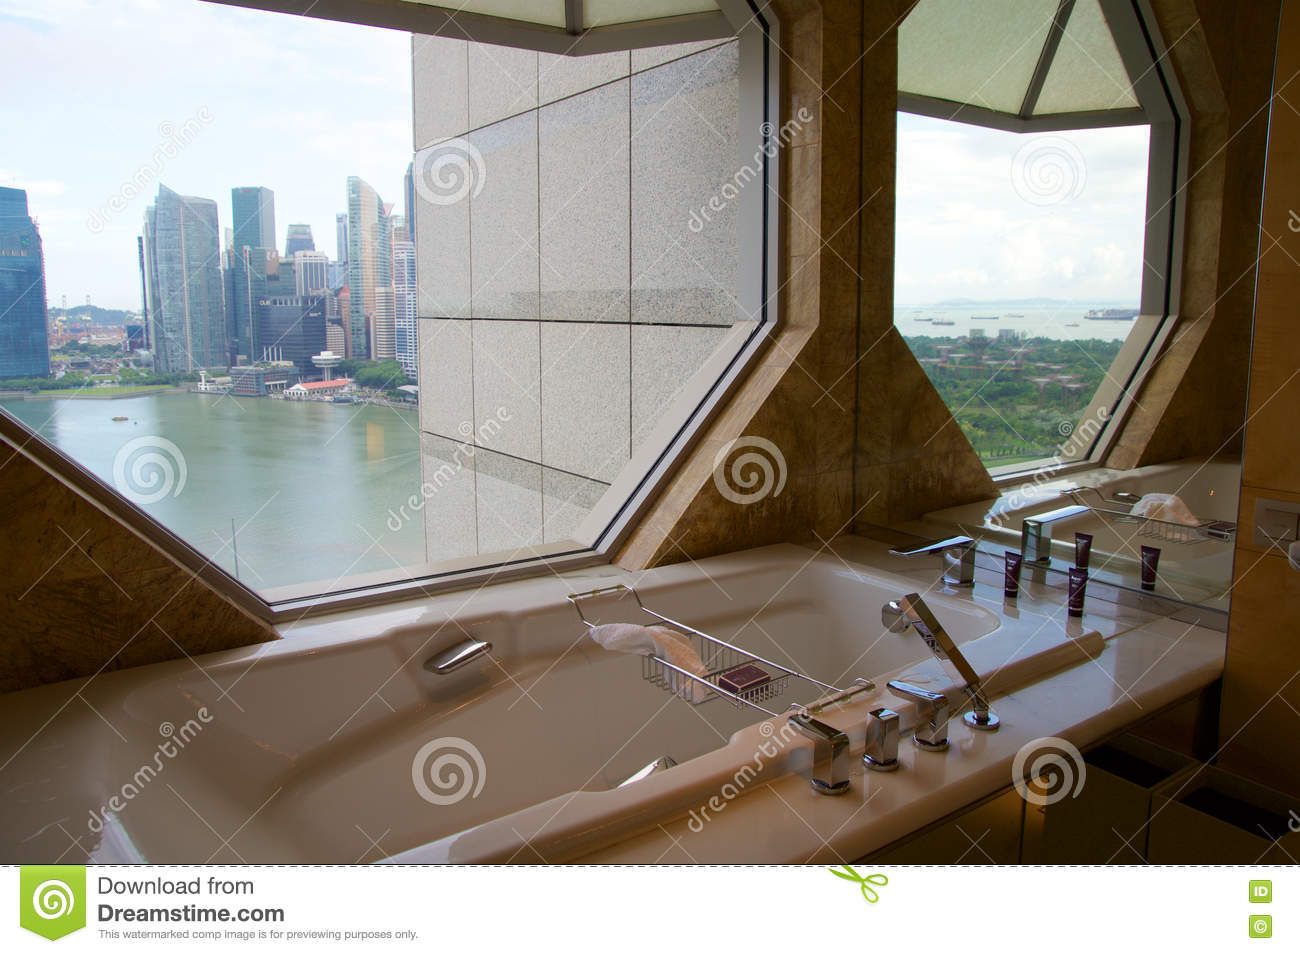 Singapore july rd luxury hotel room with modern